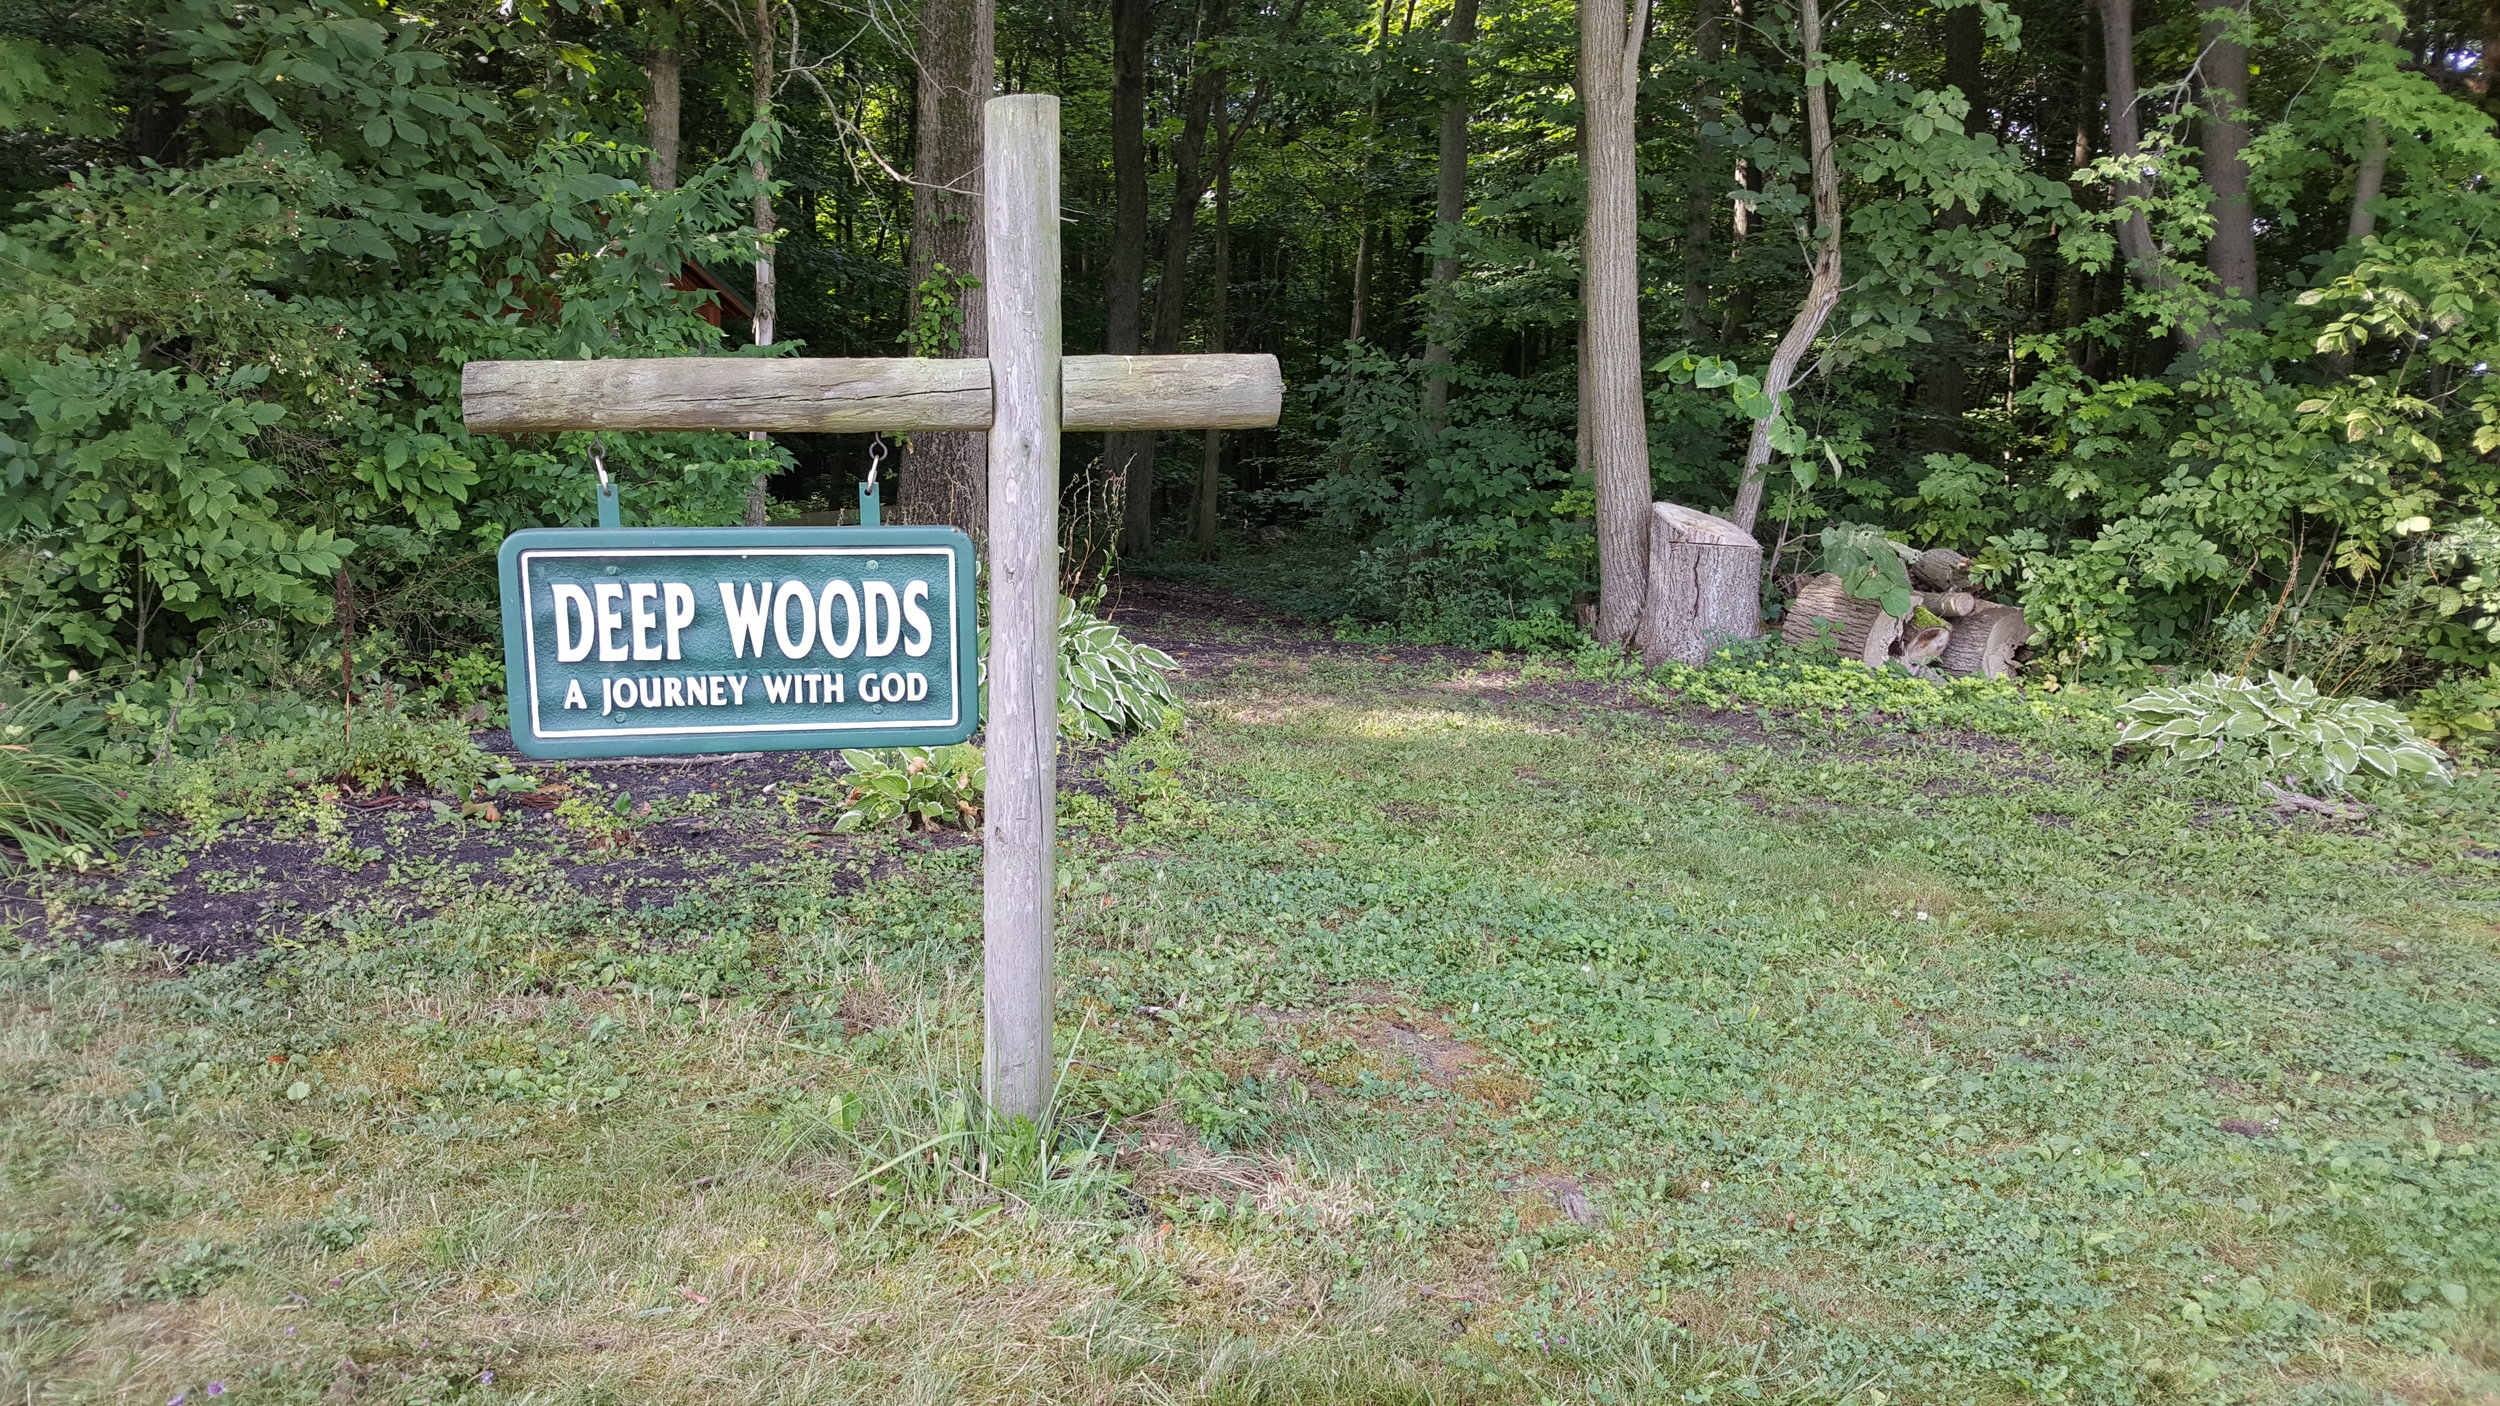 Entrance to the DEEP WOODS